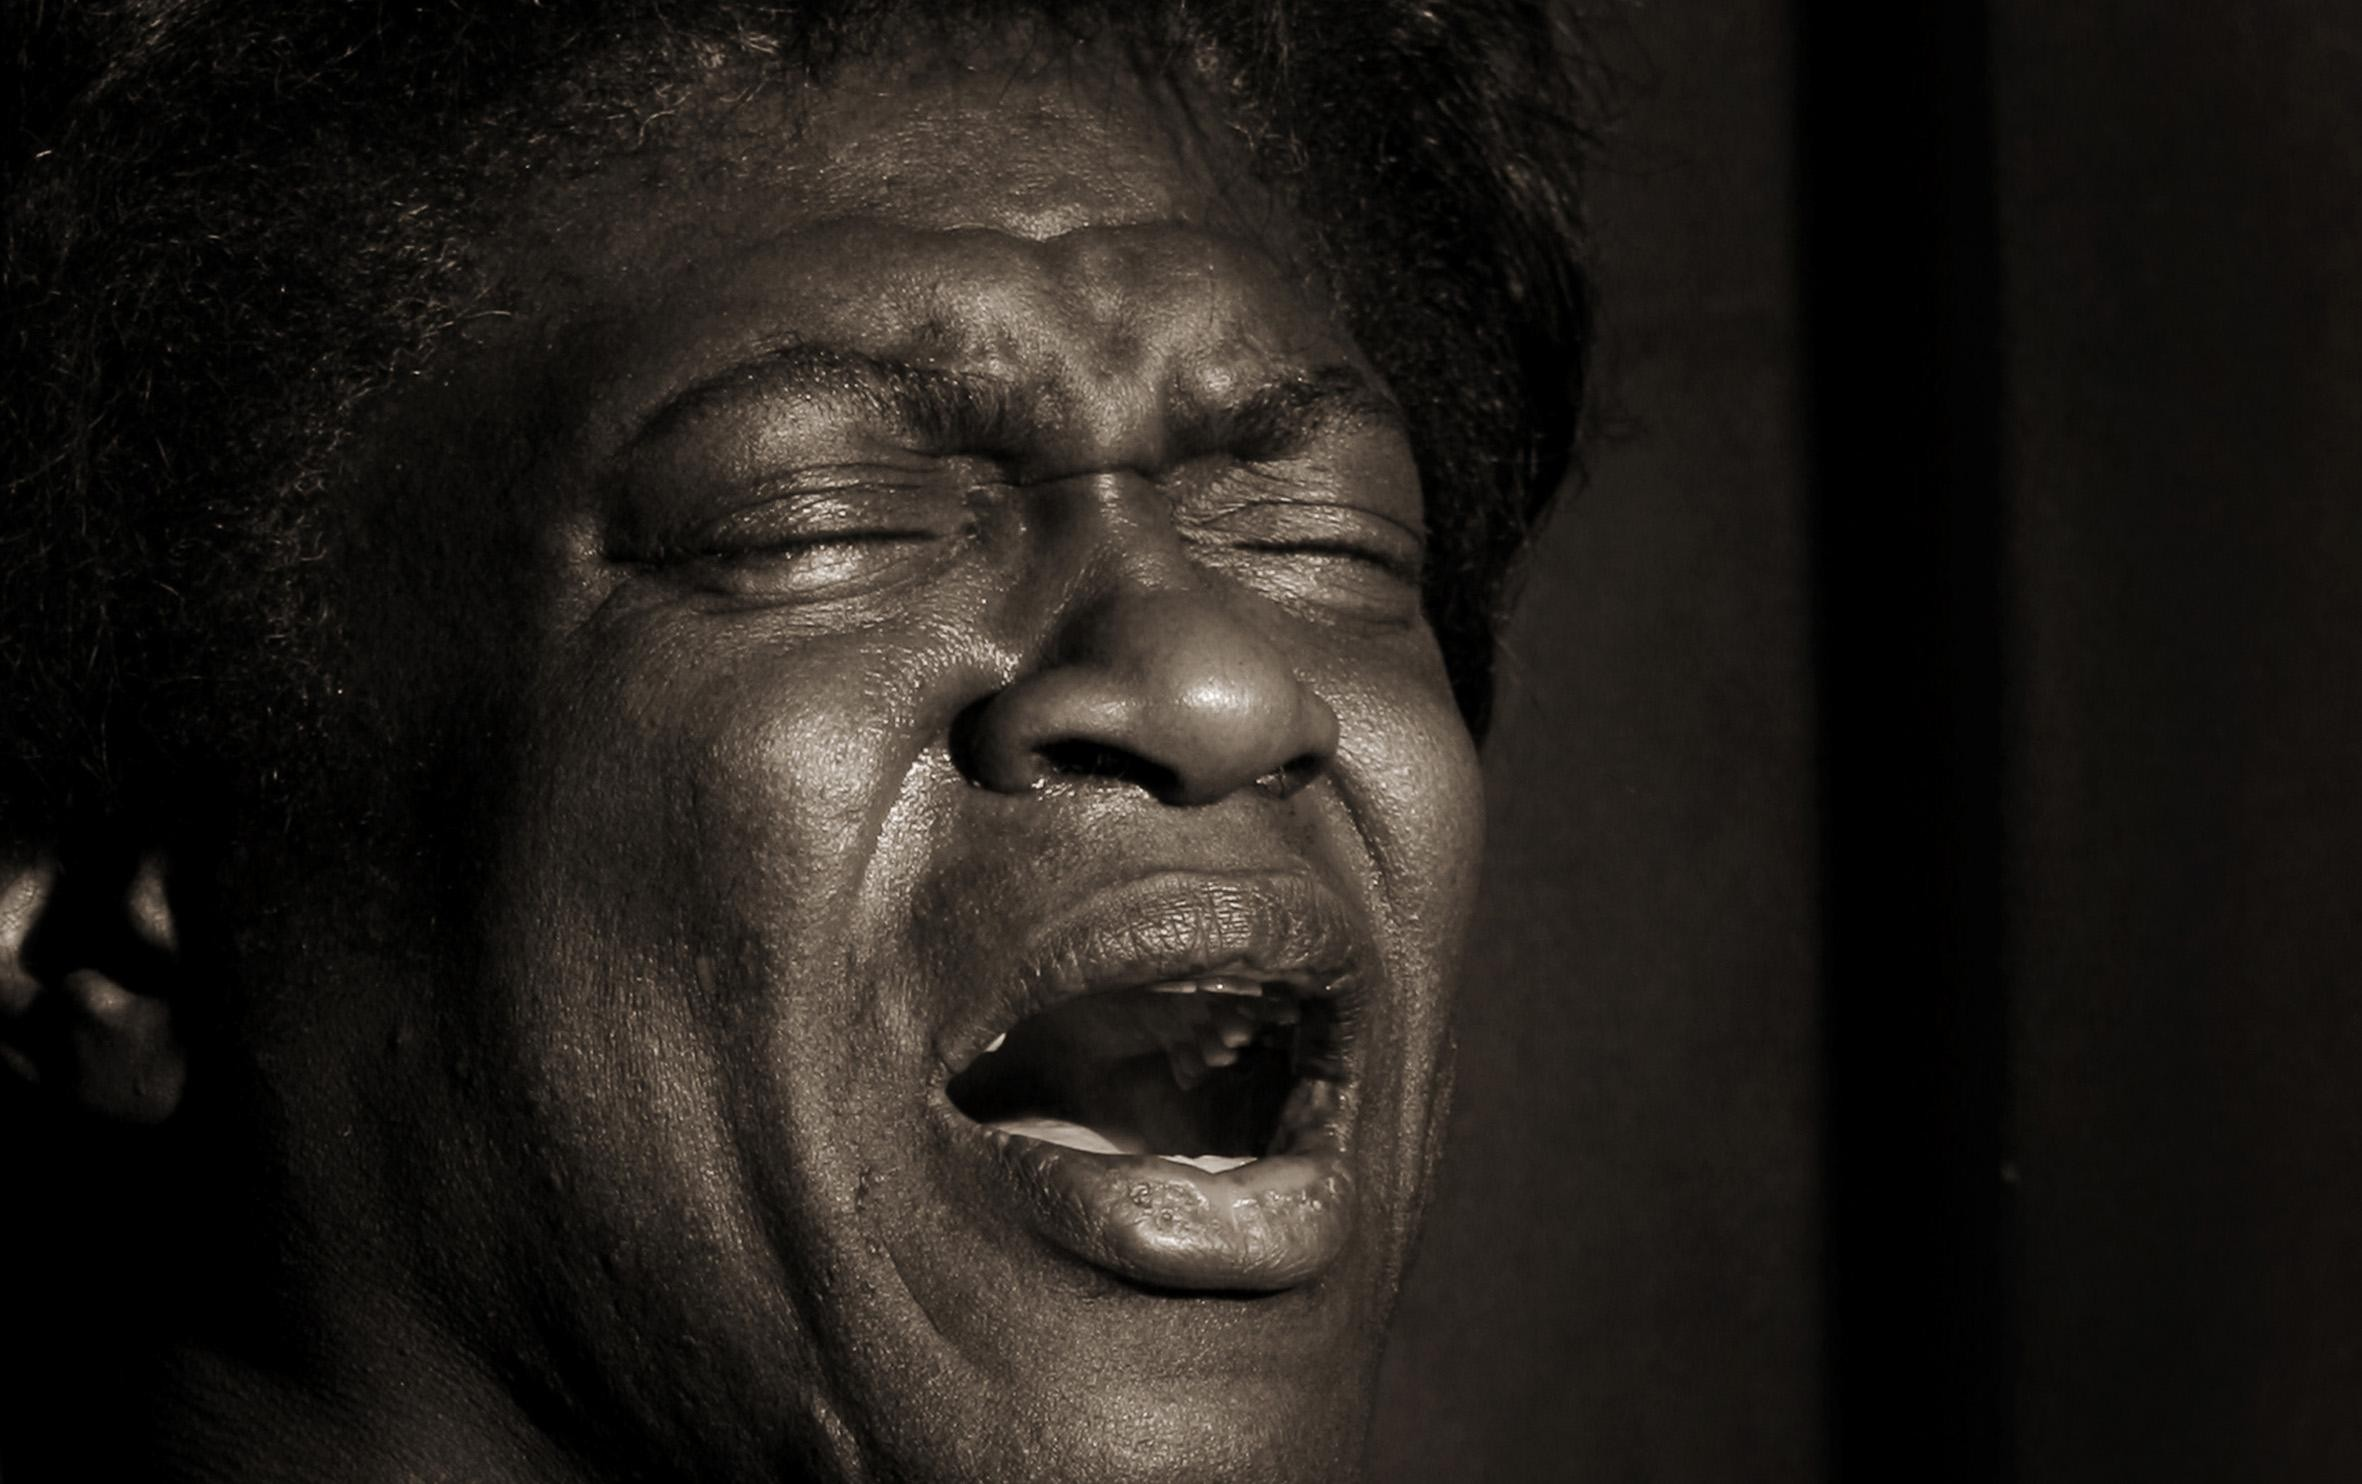 charles-bradley-1-hi-res-photo-credit-kisha-bari.jpg